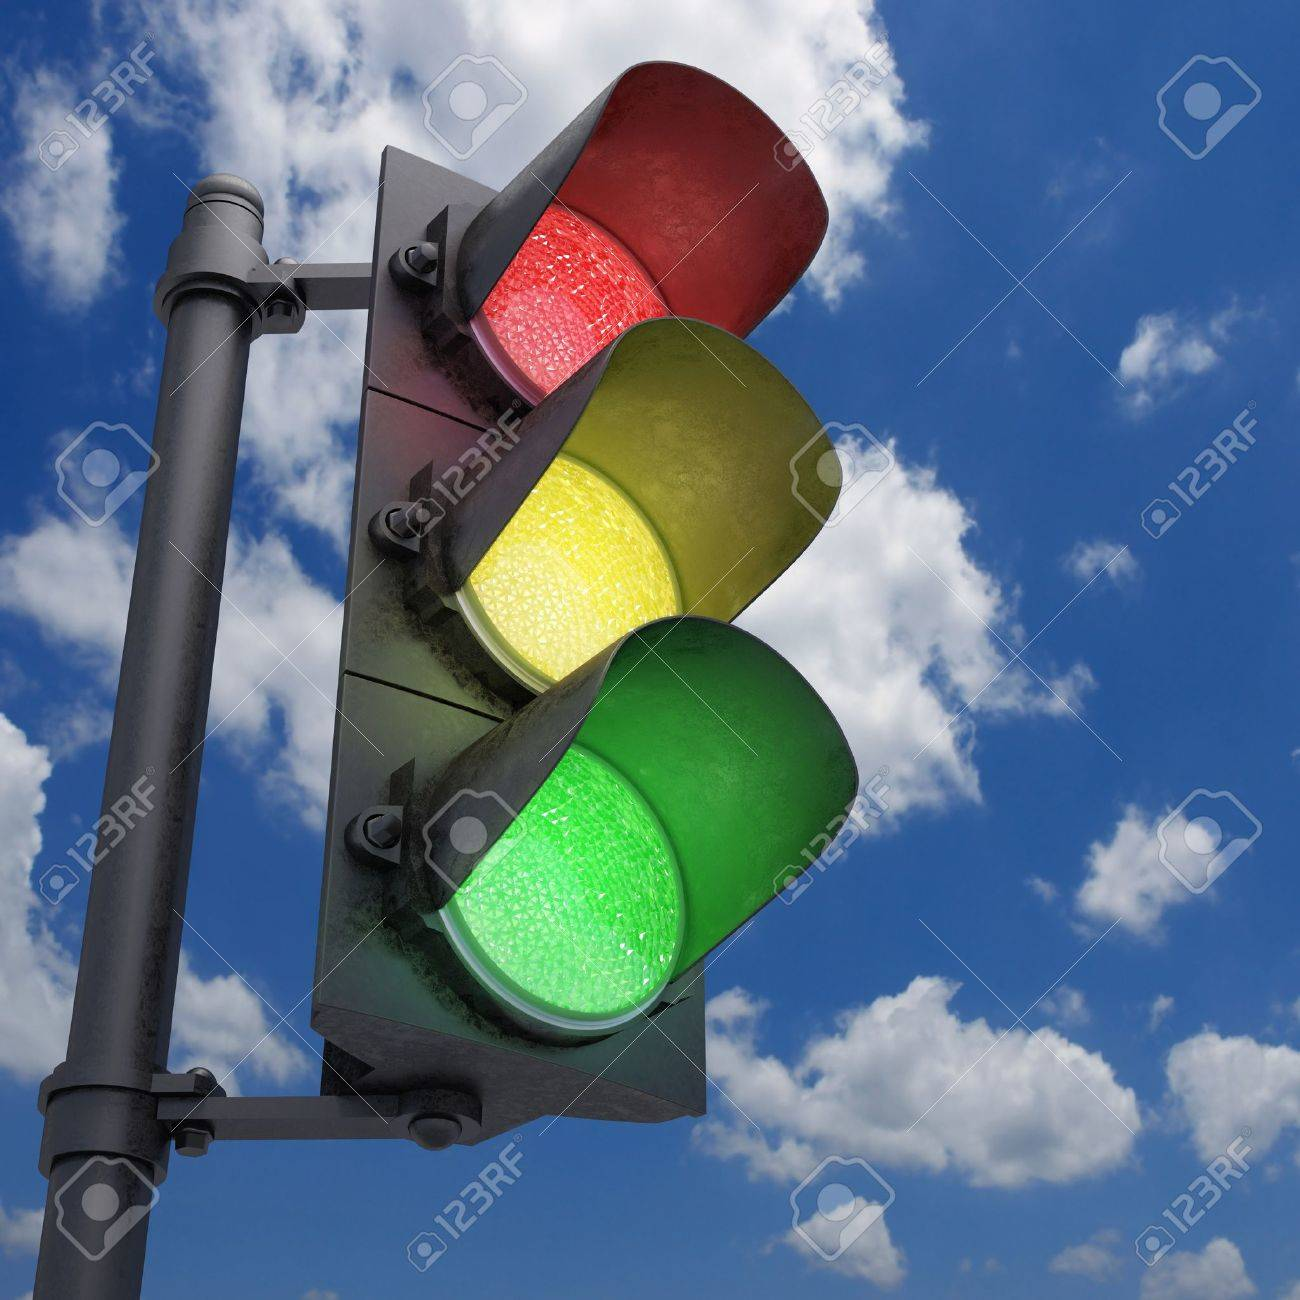 Traffic Light in a blue sky with all the lights on. - 17360332